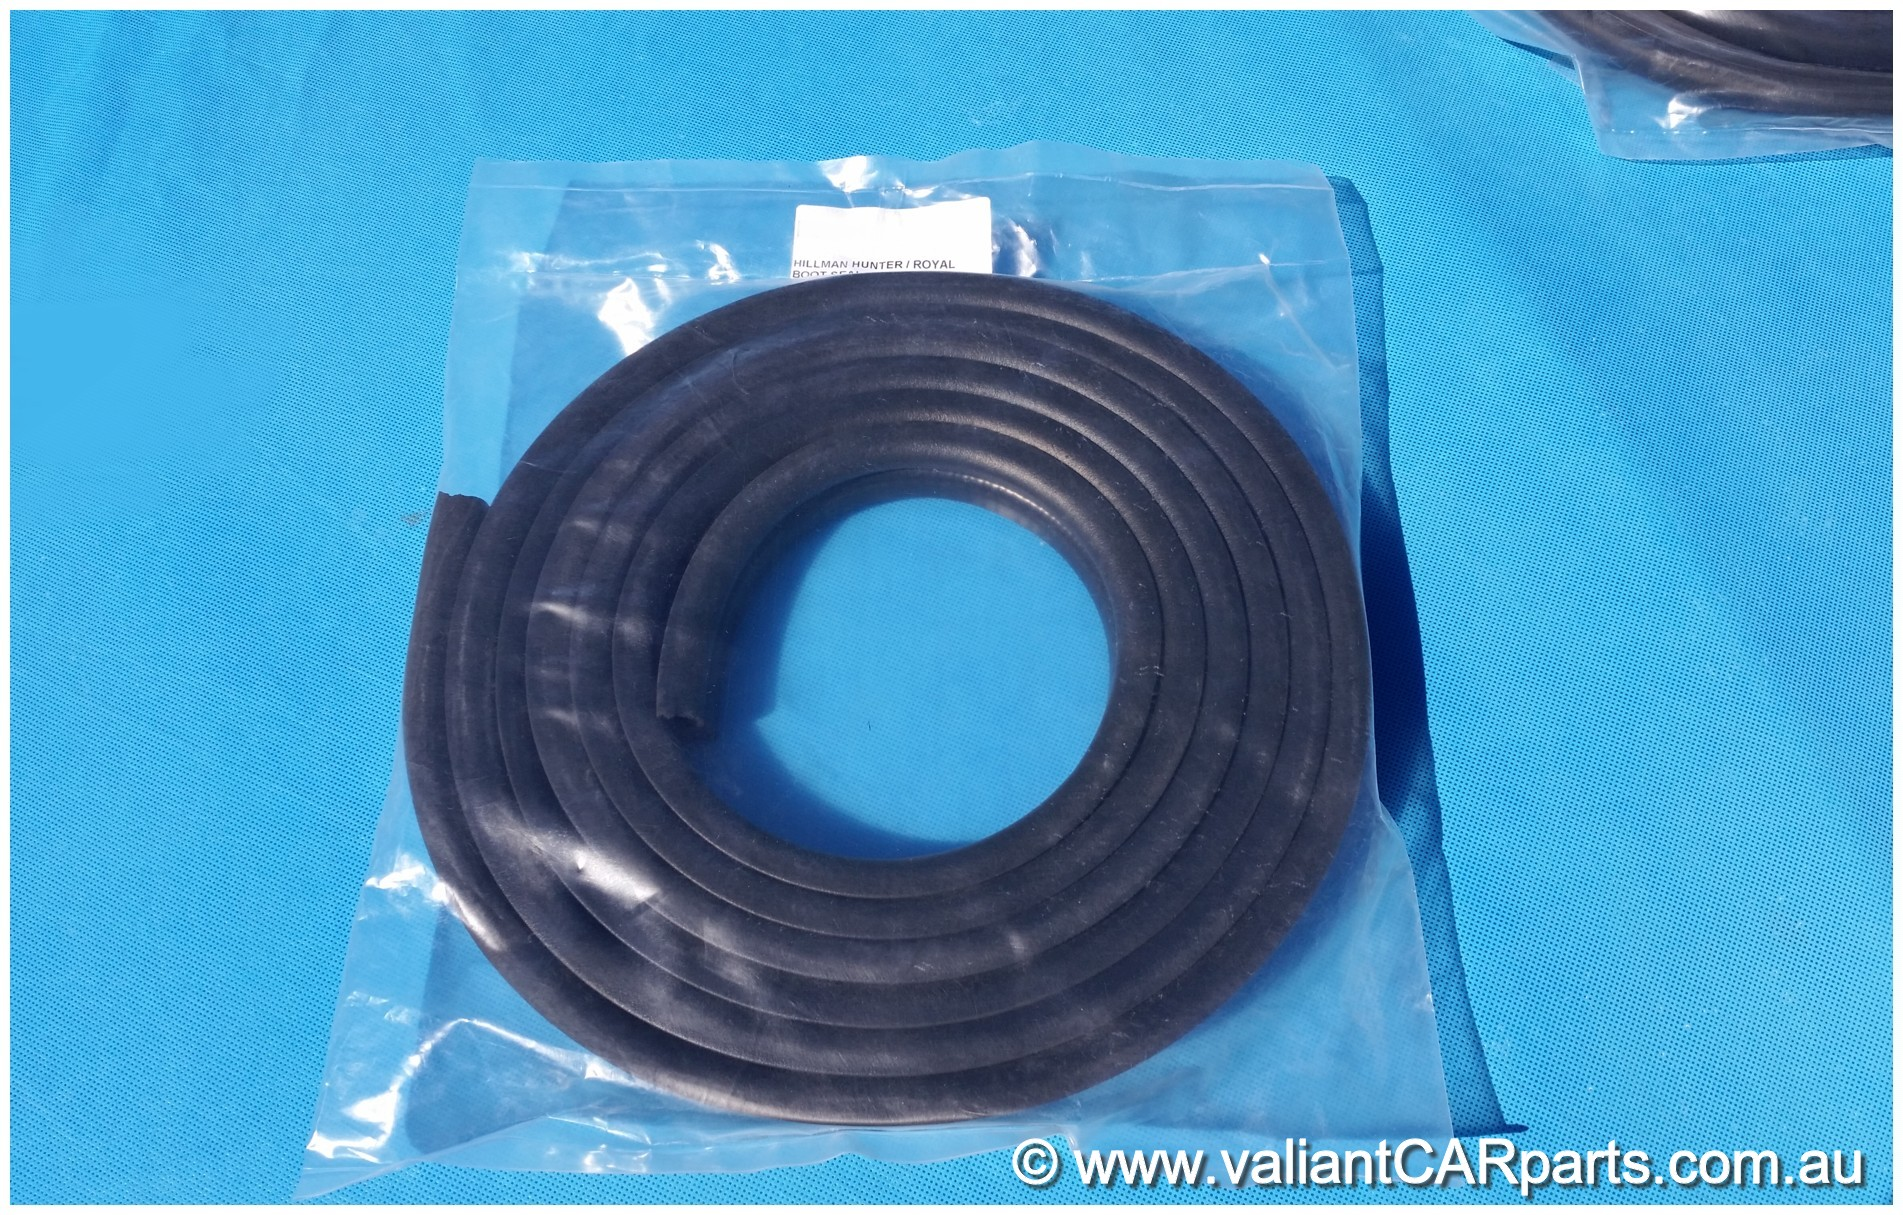 Hillman_HUNTER_SEDAN_Rubber_BOOT_SEAL_TRUNK_DECKLID_Weatherseal_incl_HB-HC-HE